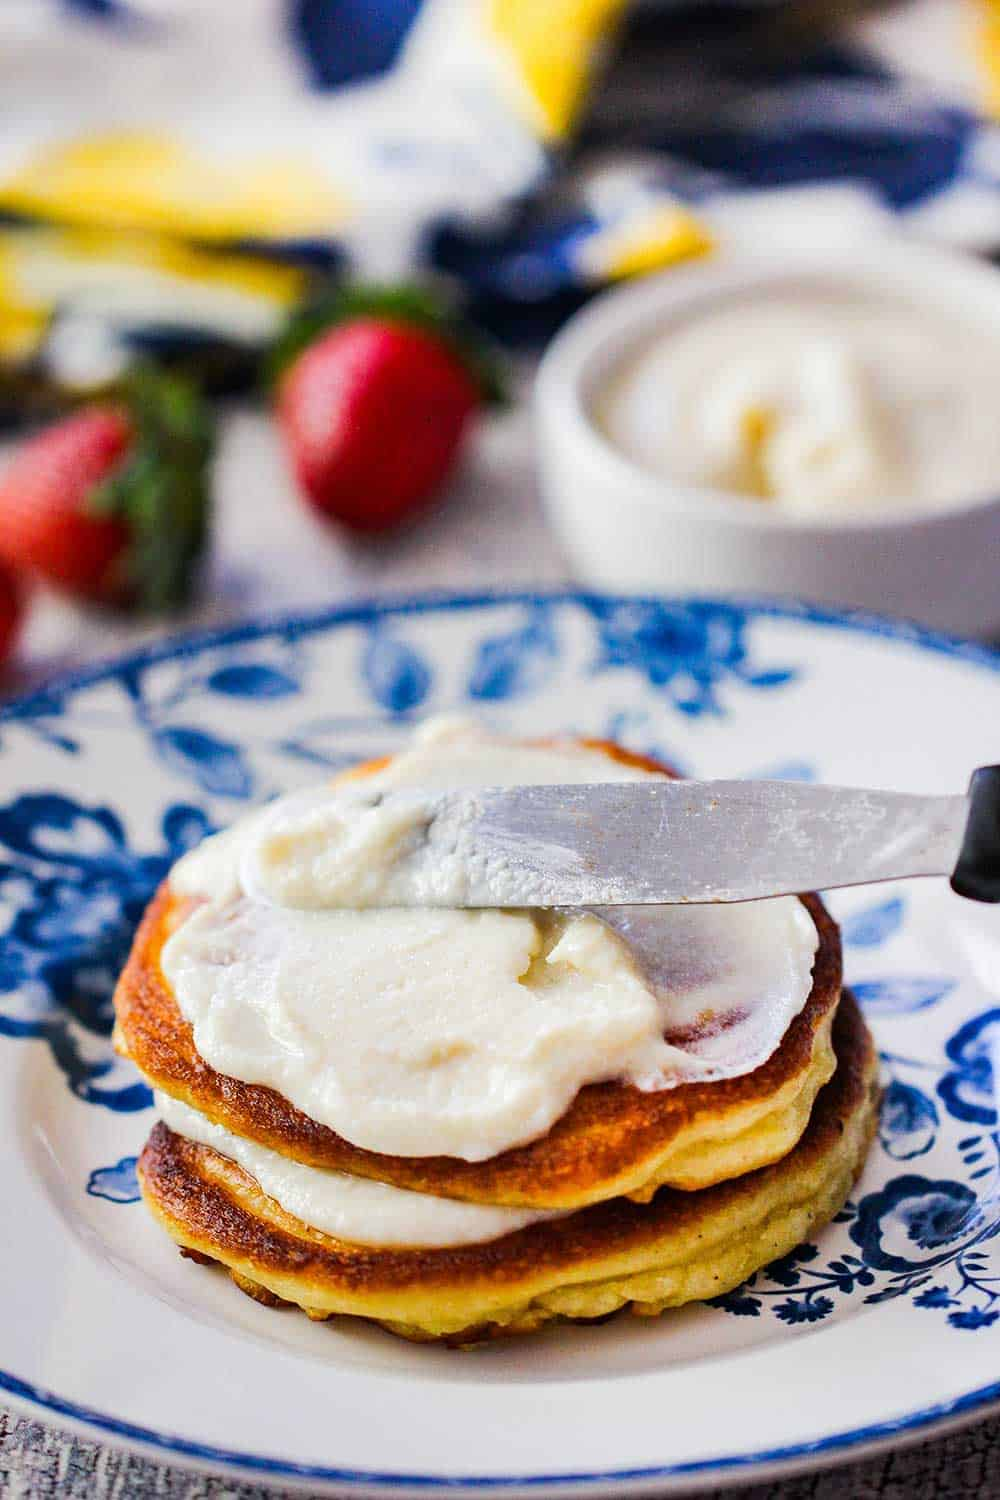 A knife smearing vanilla sauce onto lemon ricotta pancakes on a decorative plate.